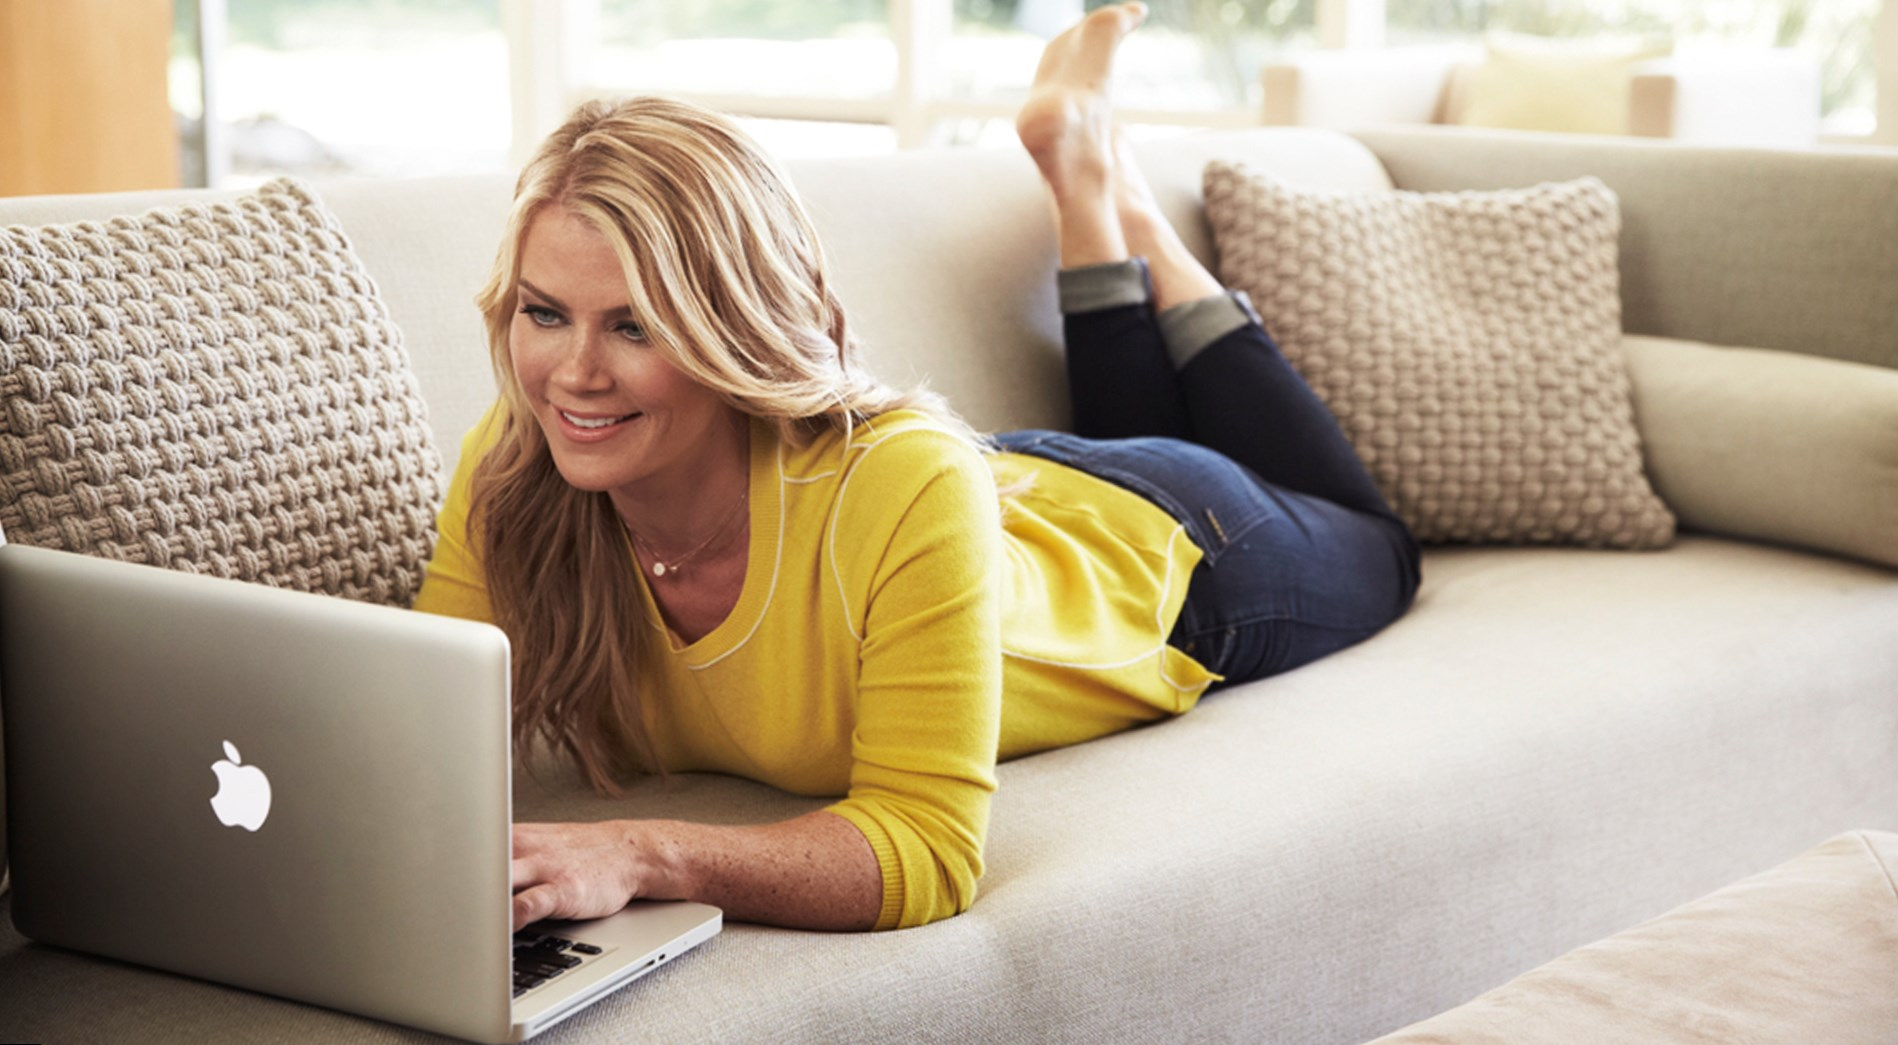 Alison Sweeney Family Pictures who is alison sweeney? wiki: husband,net worth,family,house